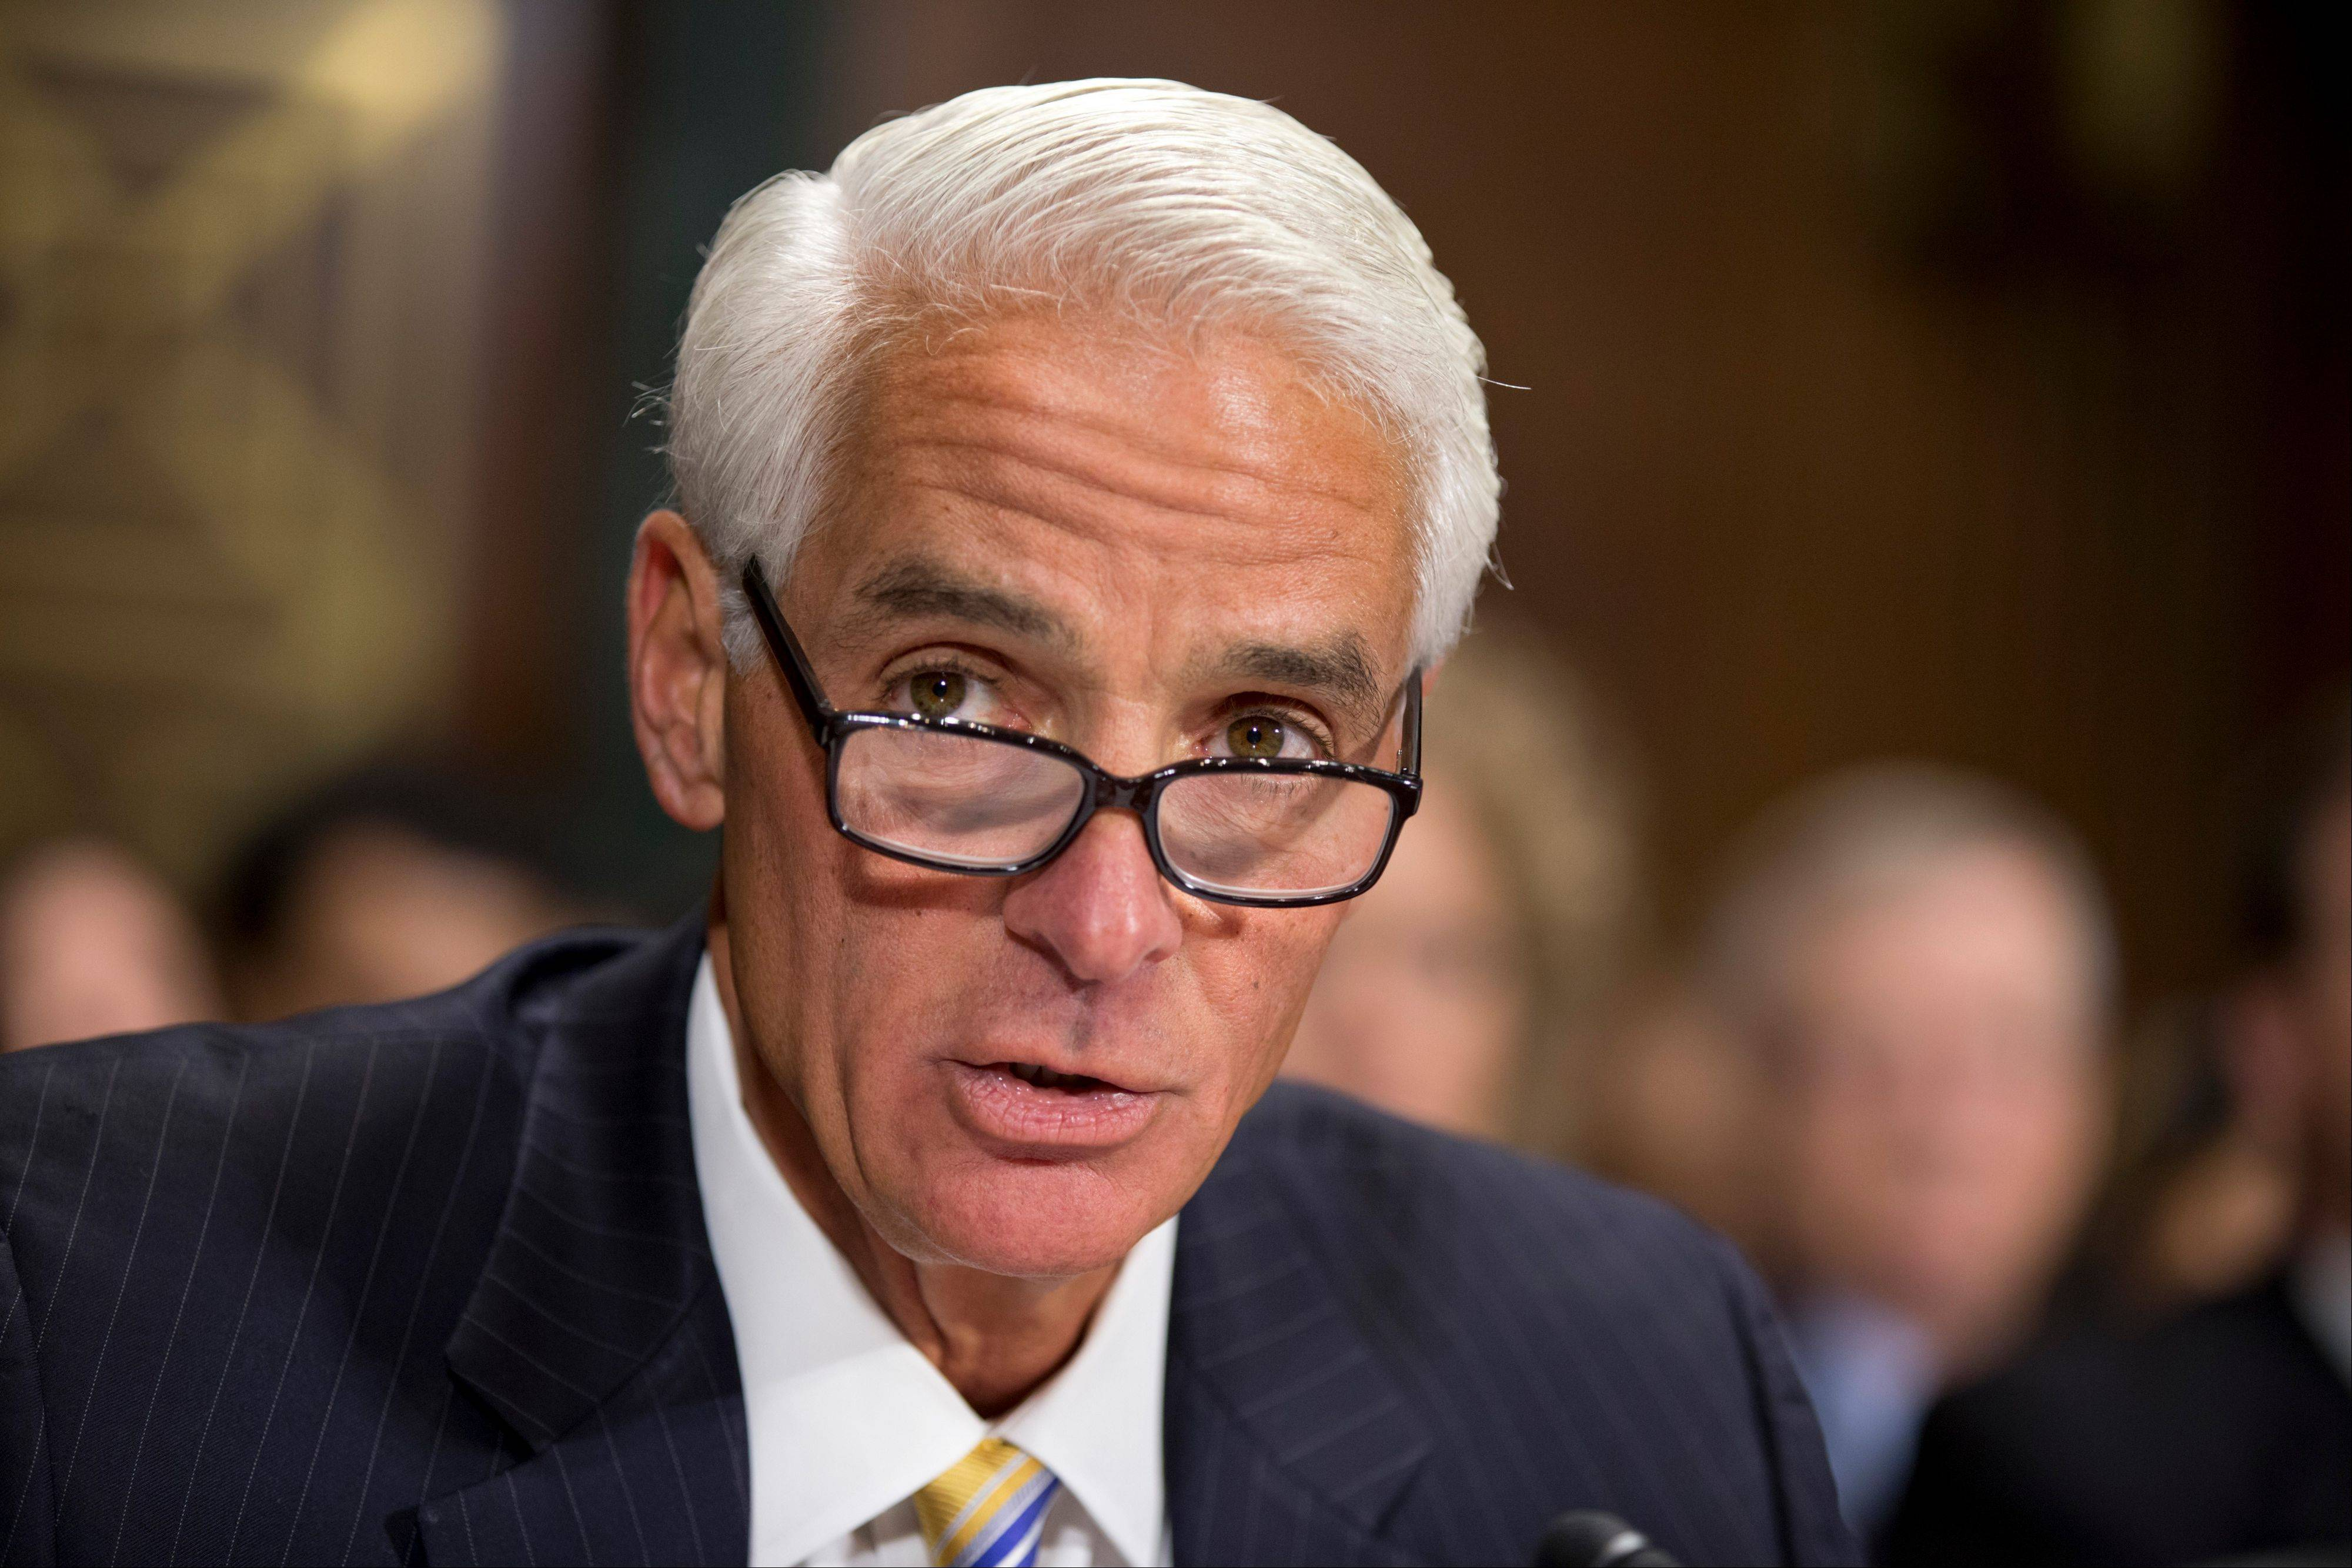 Former Florida Gov. Charlie Crist delivers a statement before the Senate Judiciary Committee on Capitol Hill in Washington.